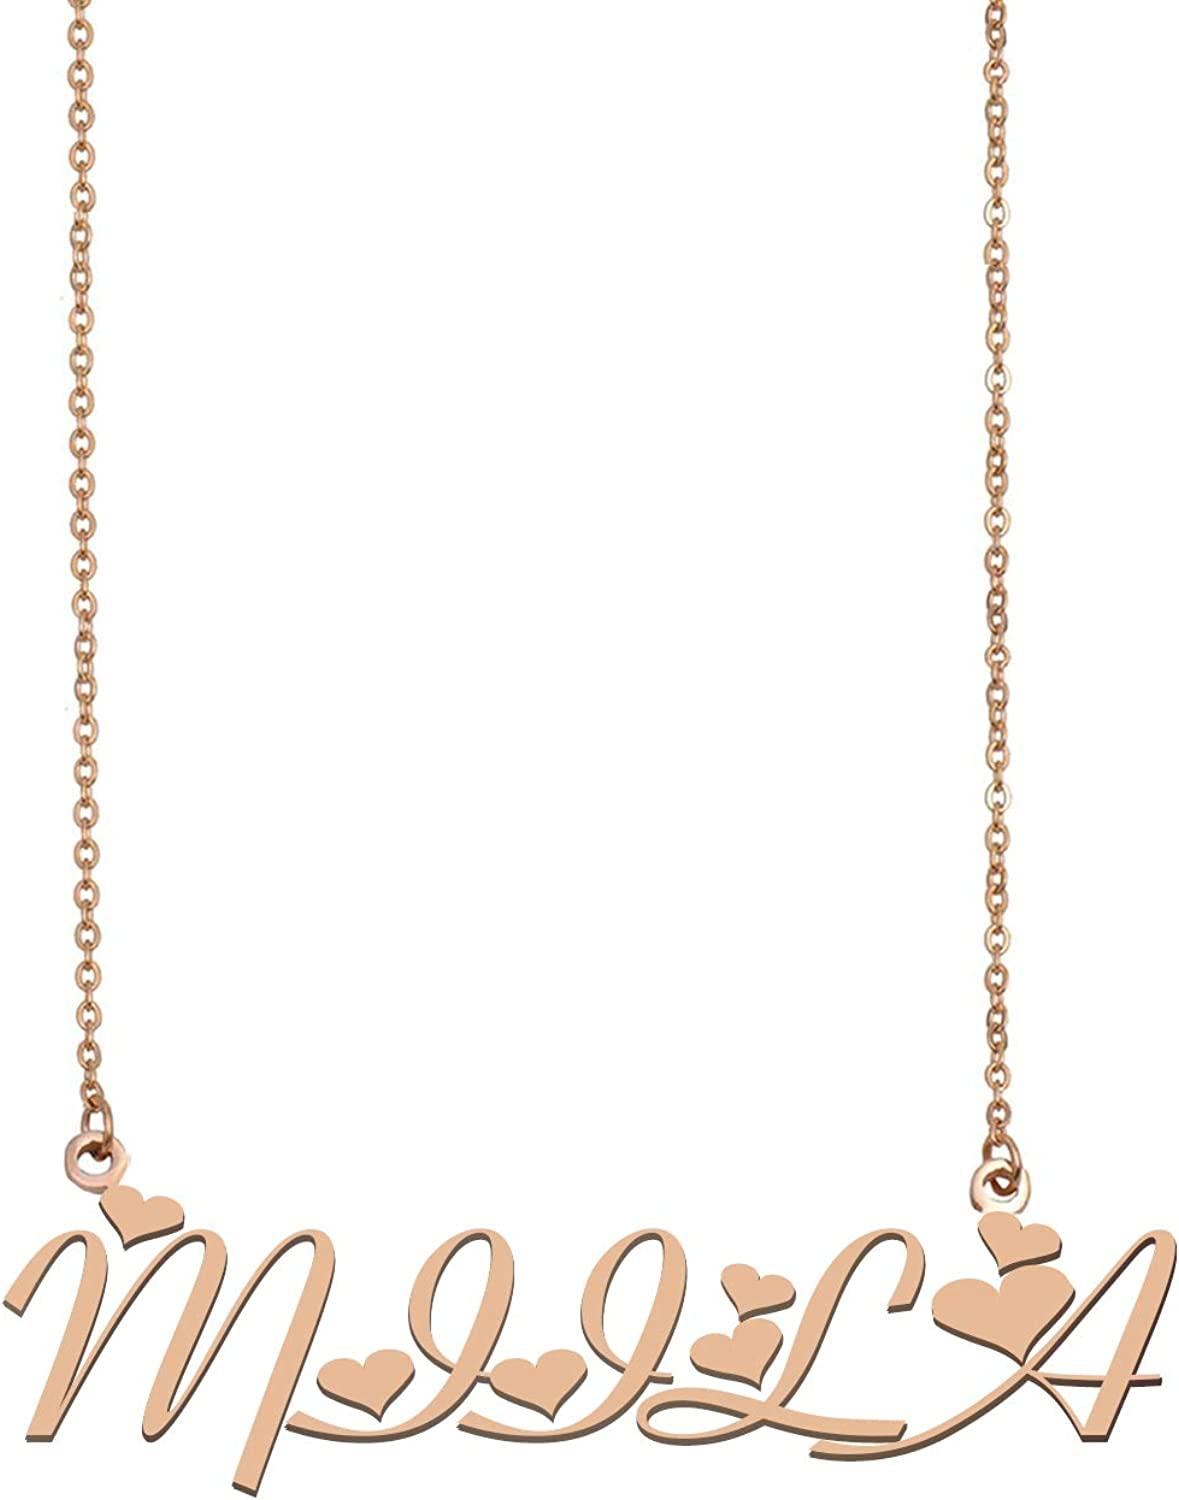 Necklace with Name Name Plate Necklace Personalized Name Necklace Spud Name Necklace Gold Custom Name Necklace